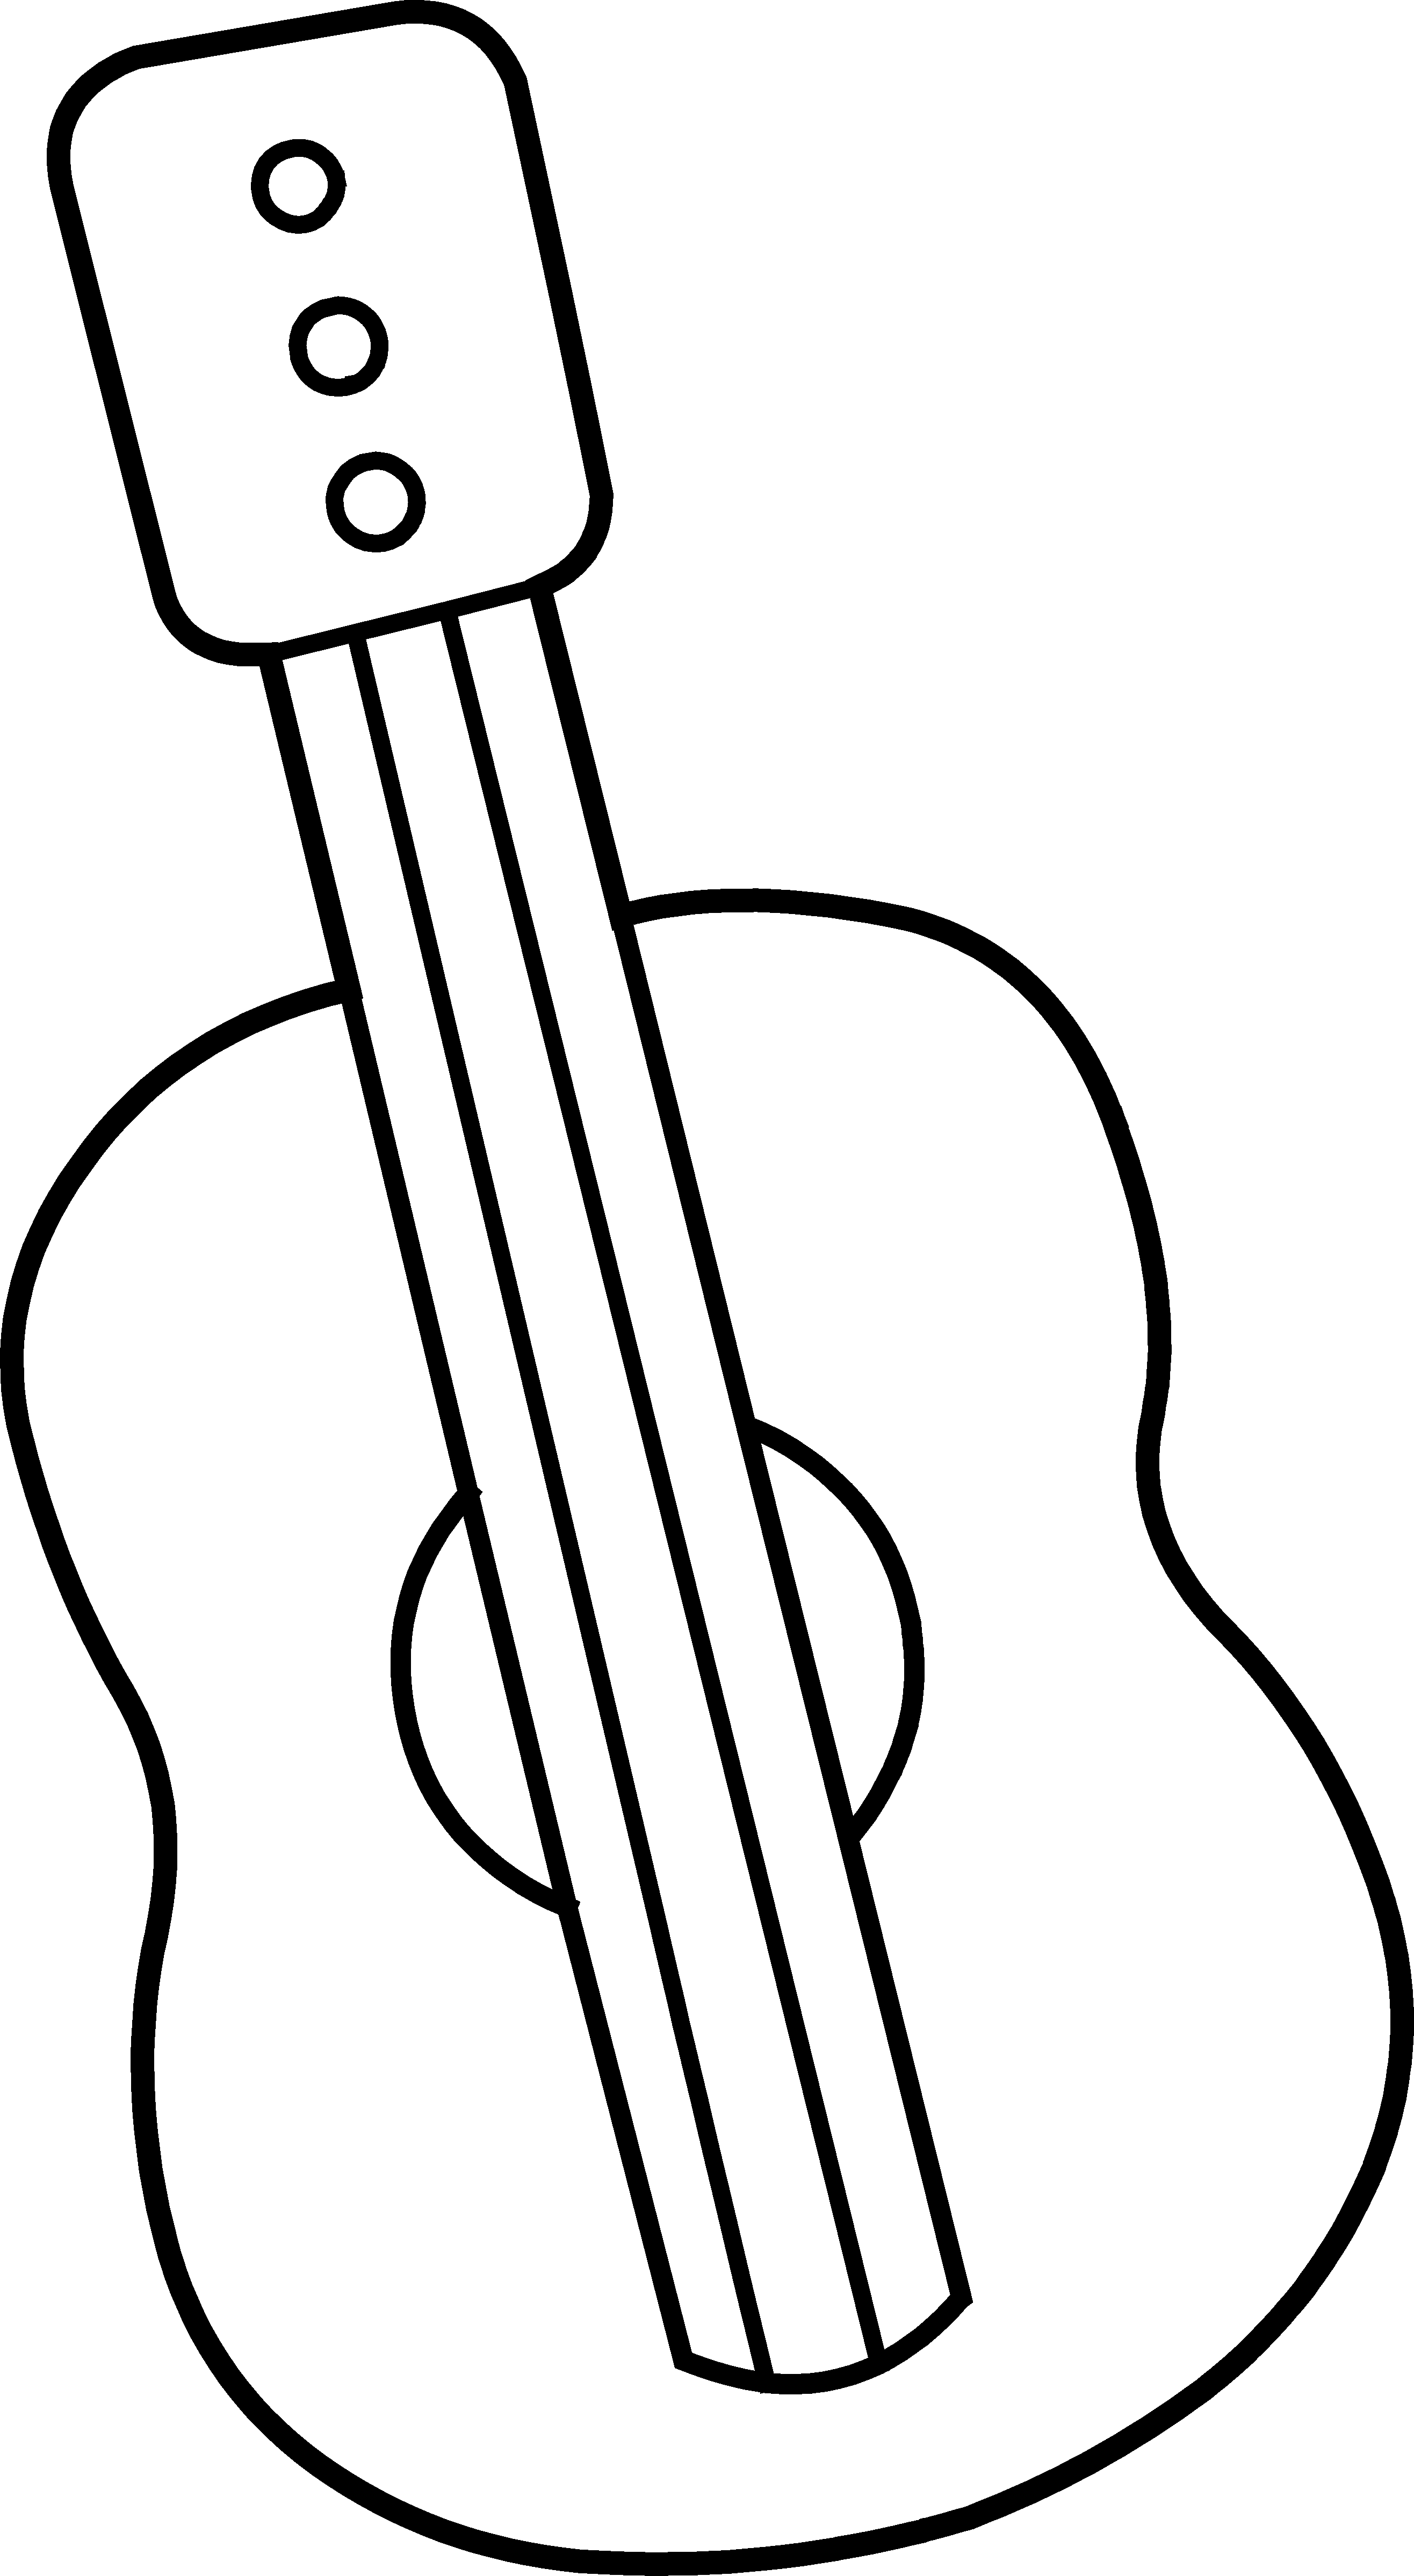 Guitar Clip Art Border Black And White   Clipart Best